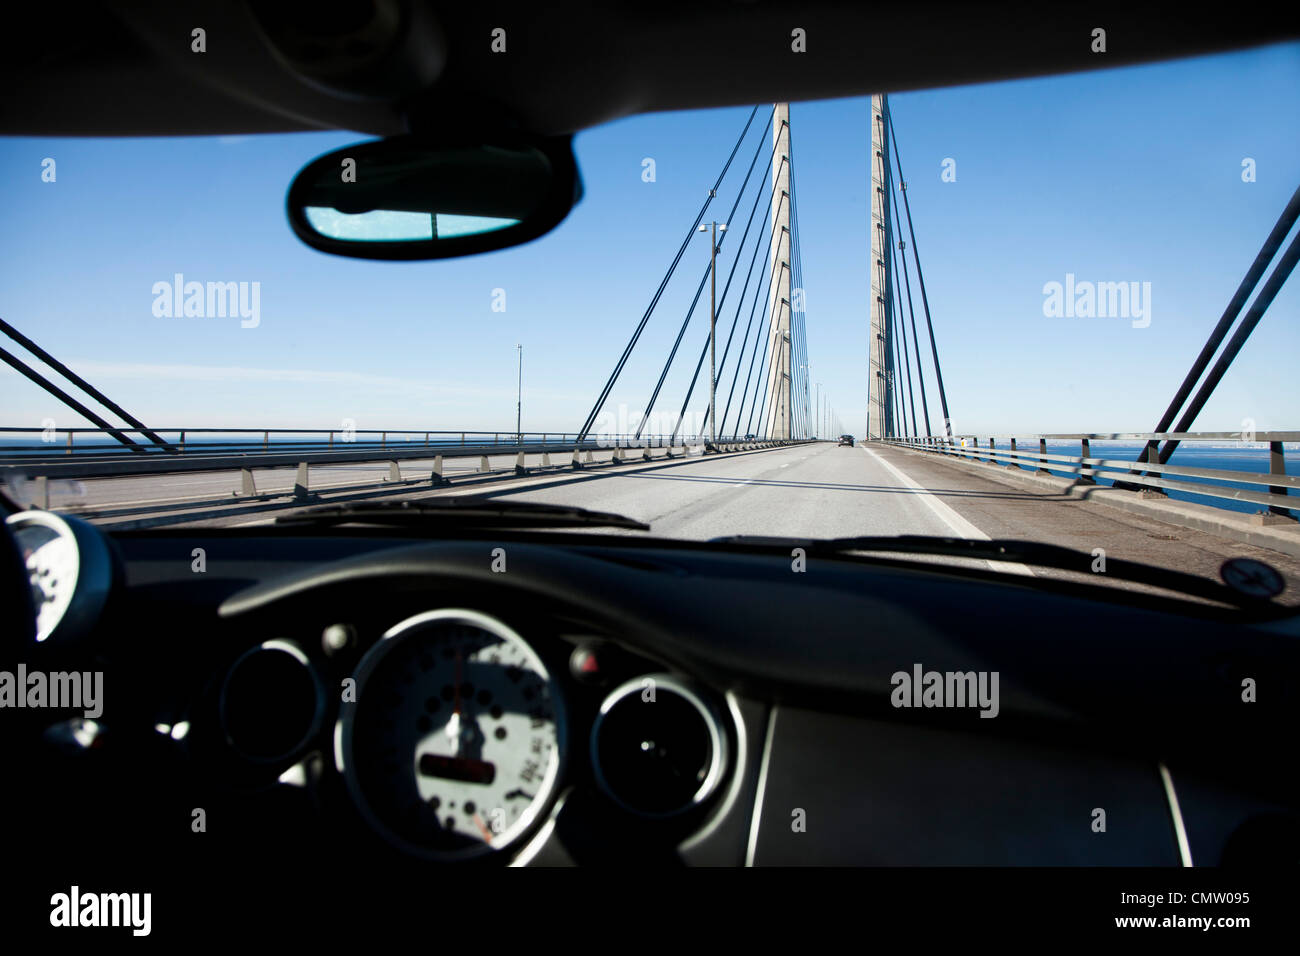 Voiture sur le chemin sur un pont Photo Stock